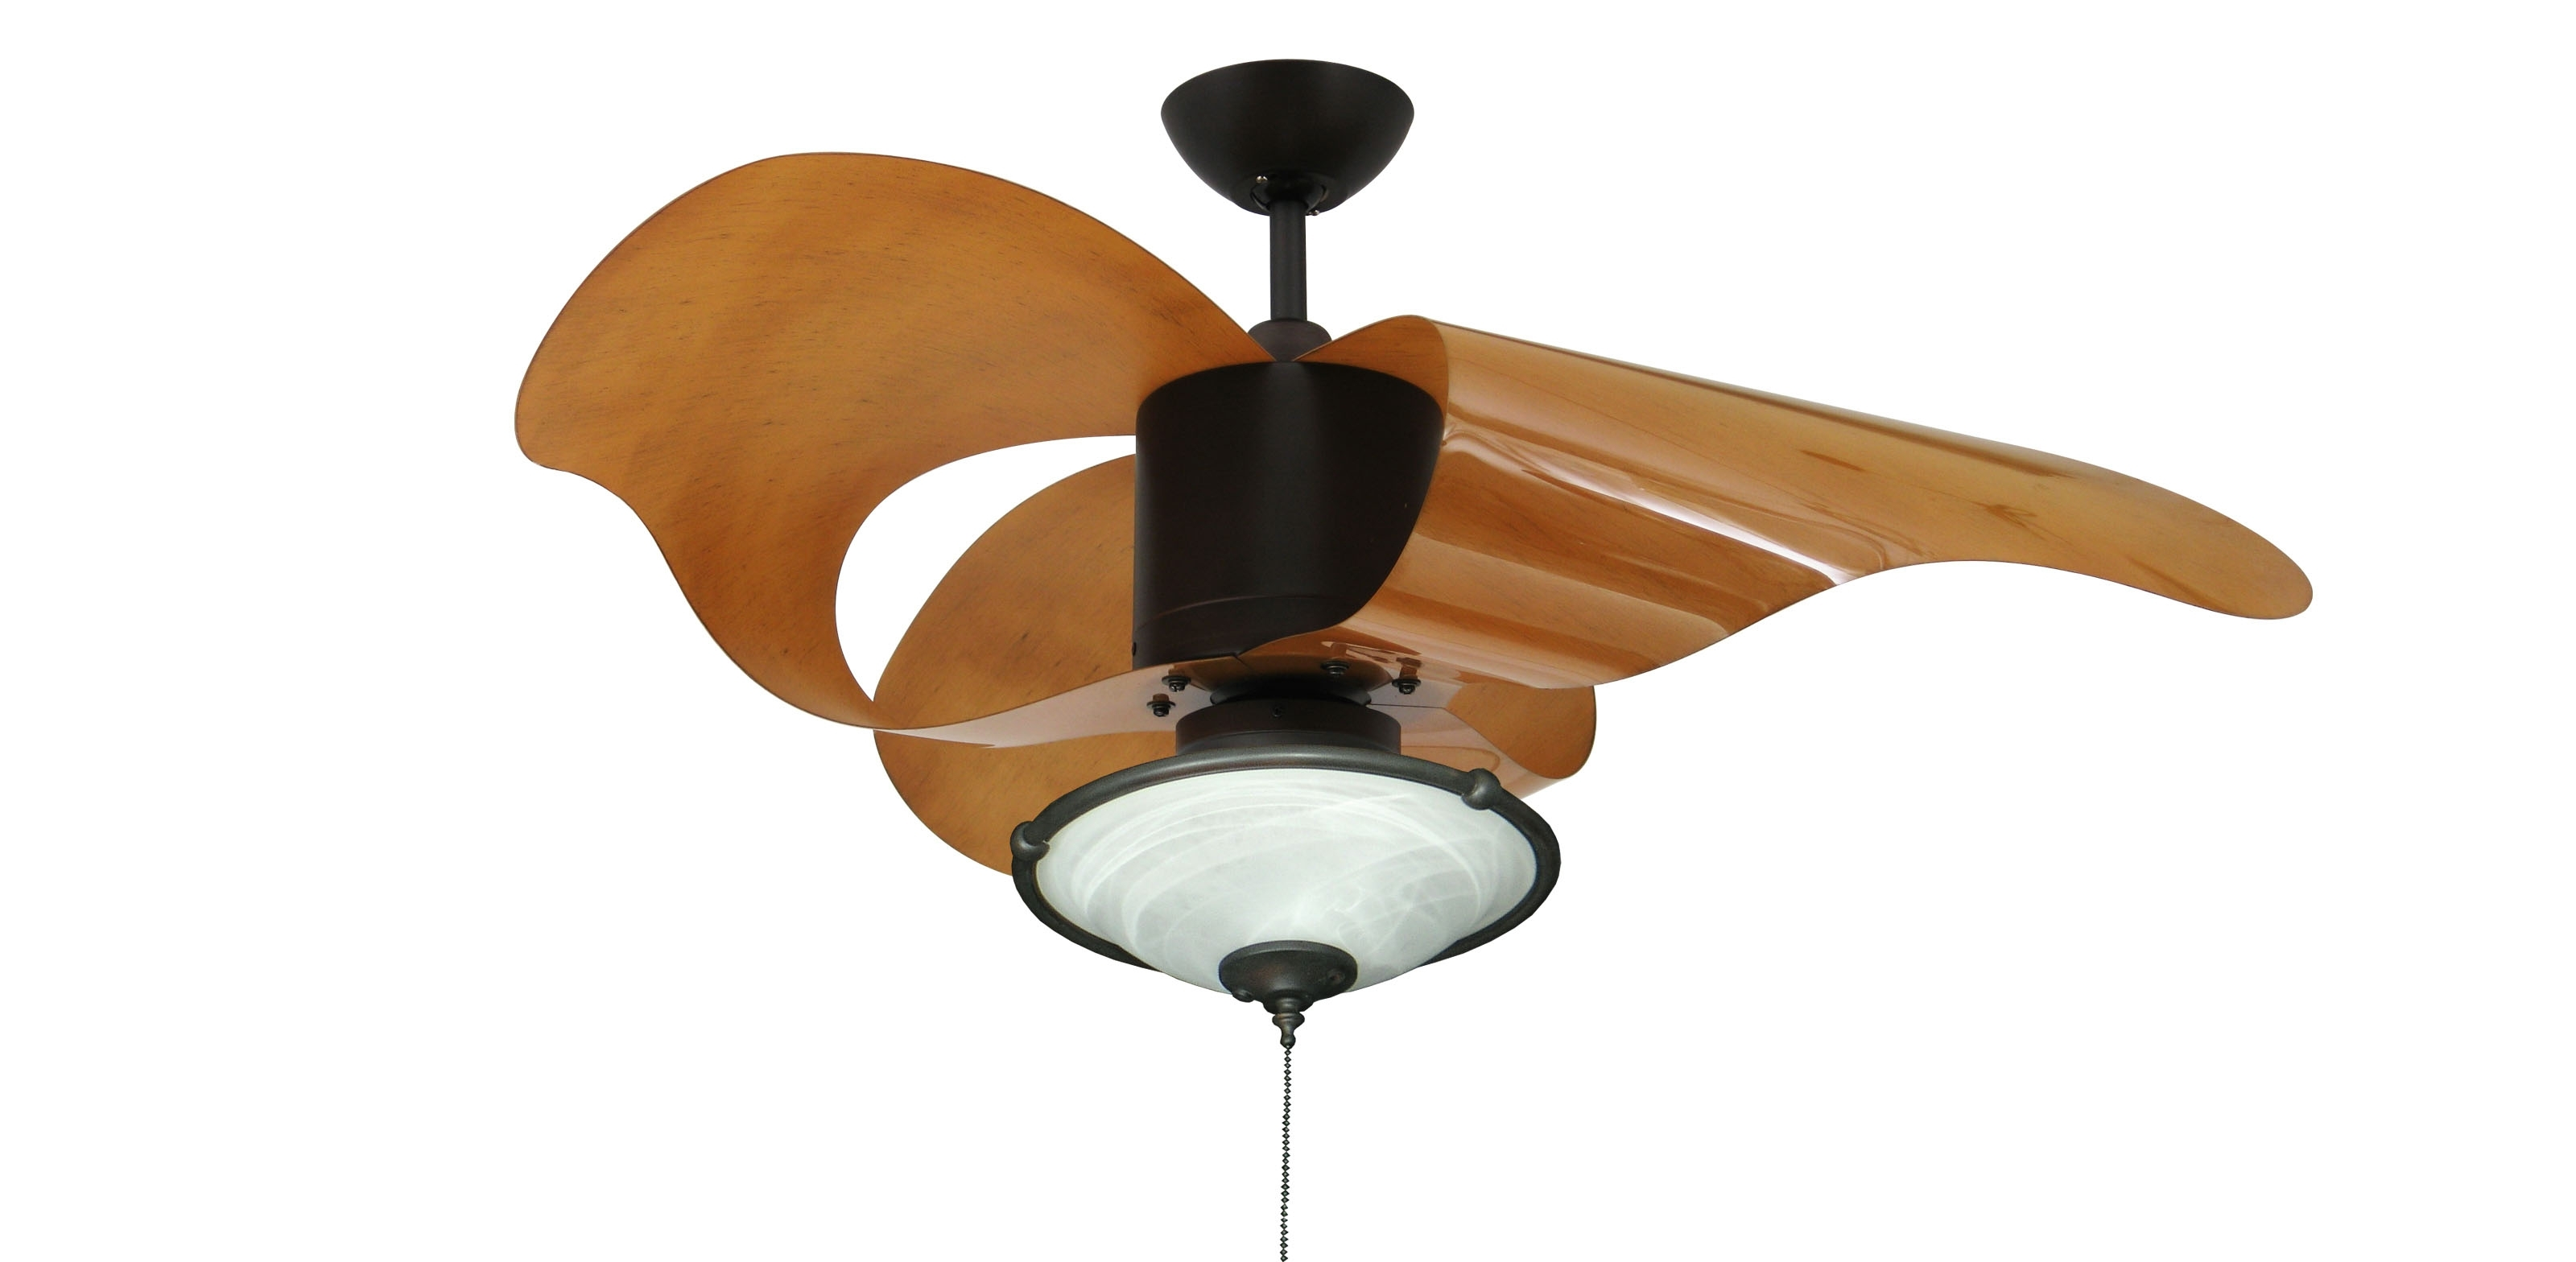 Modest Unique Big Unusual Ceiling Fans With Lights For Current Unique Outdoor Ceiling Fans With Lights (View 11 of 20)